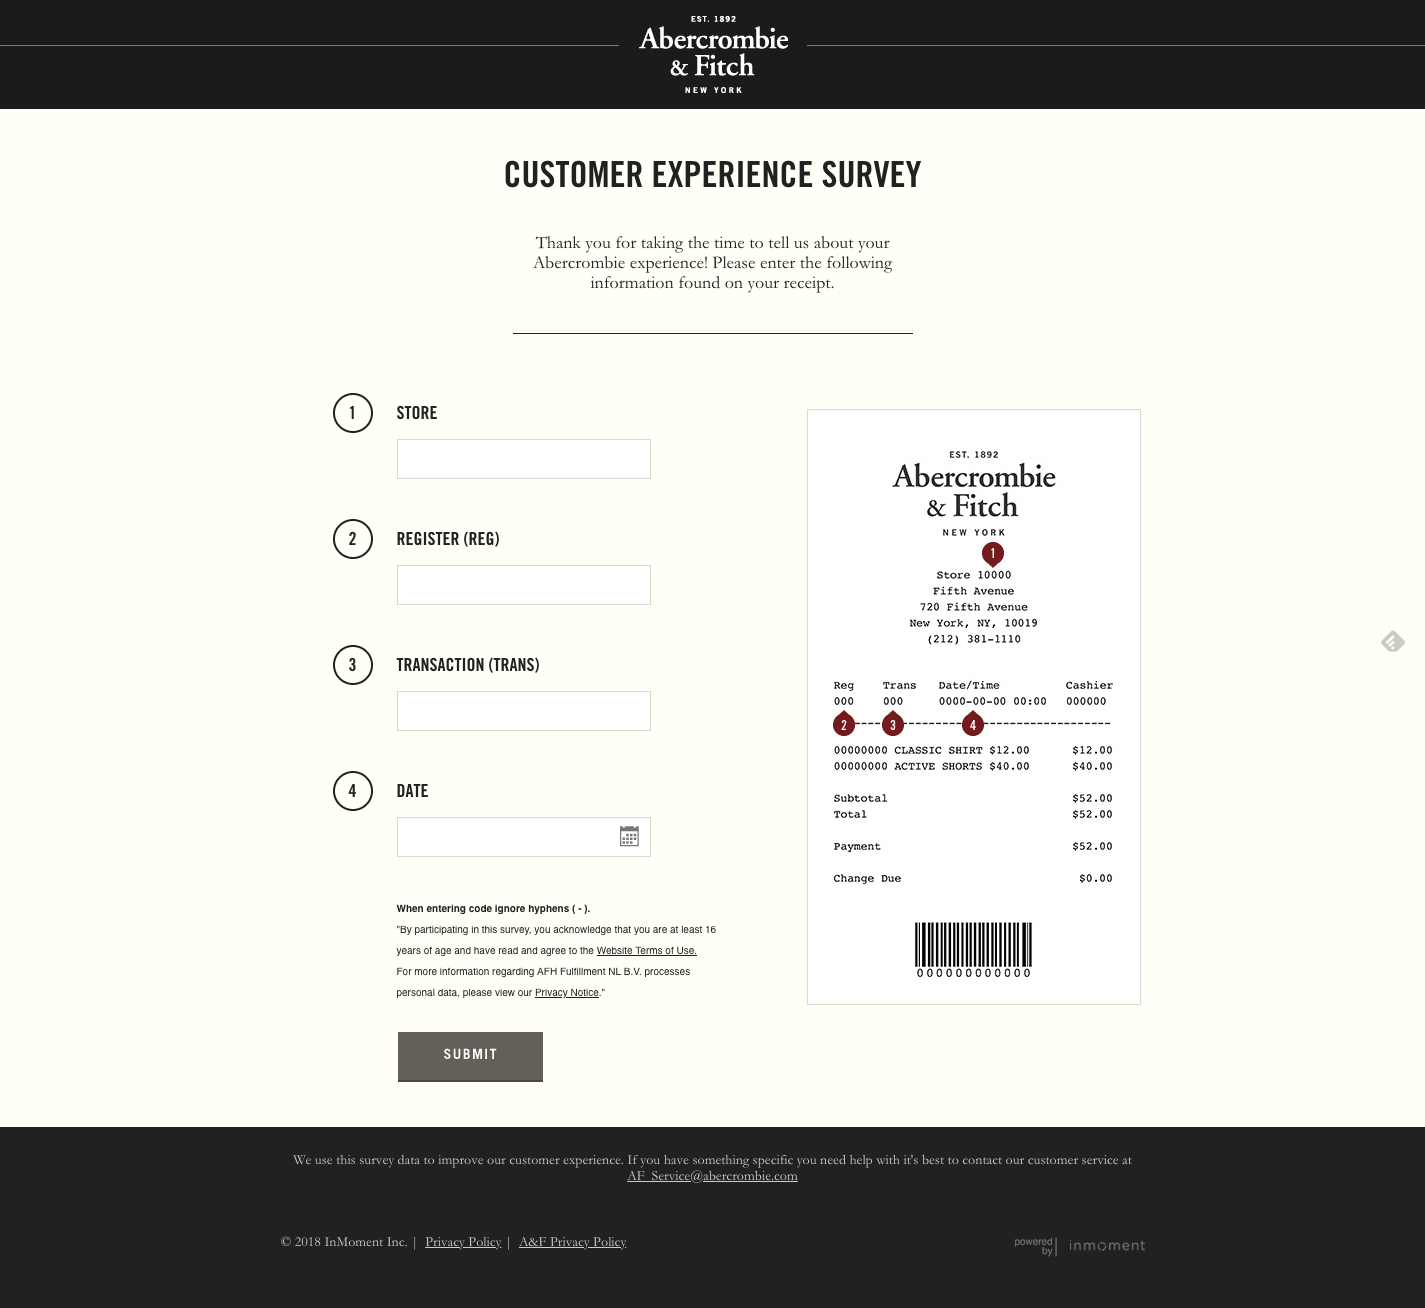 Abercrombie and Fitch survey